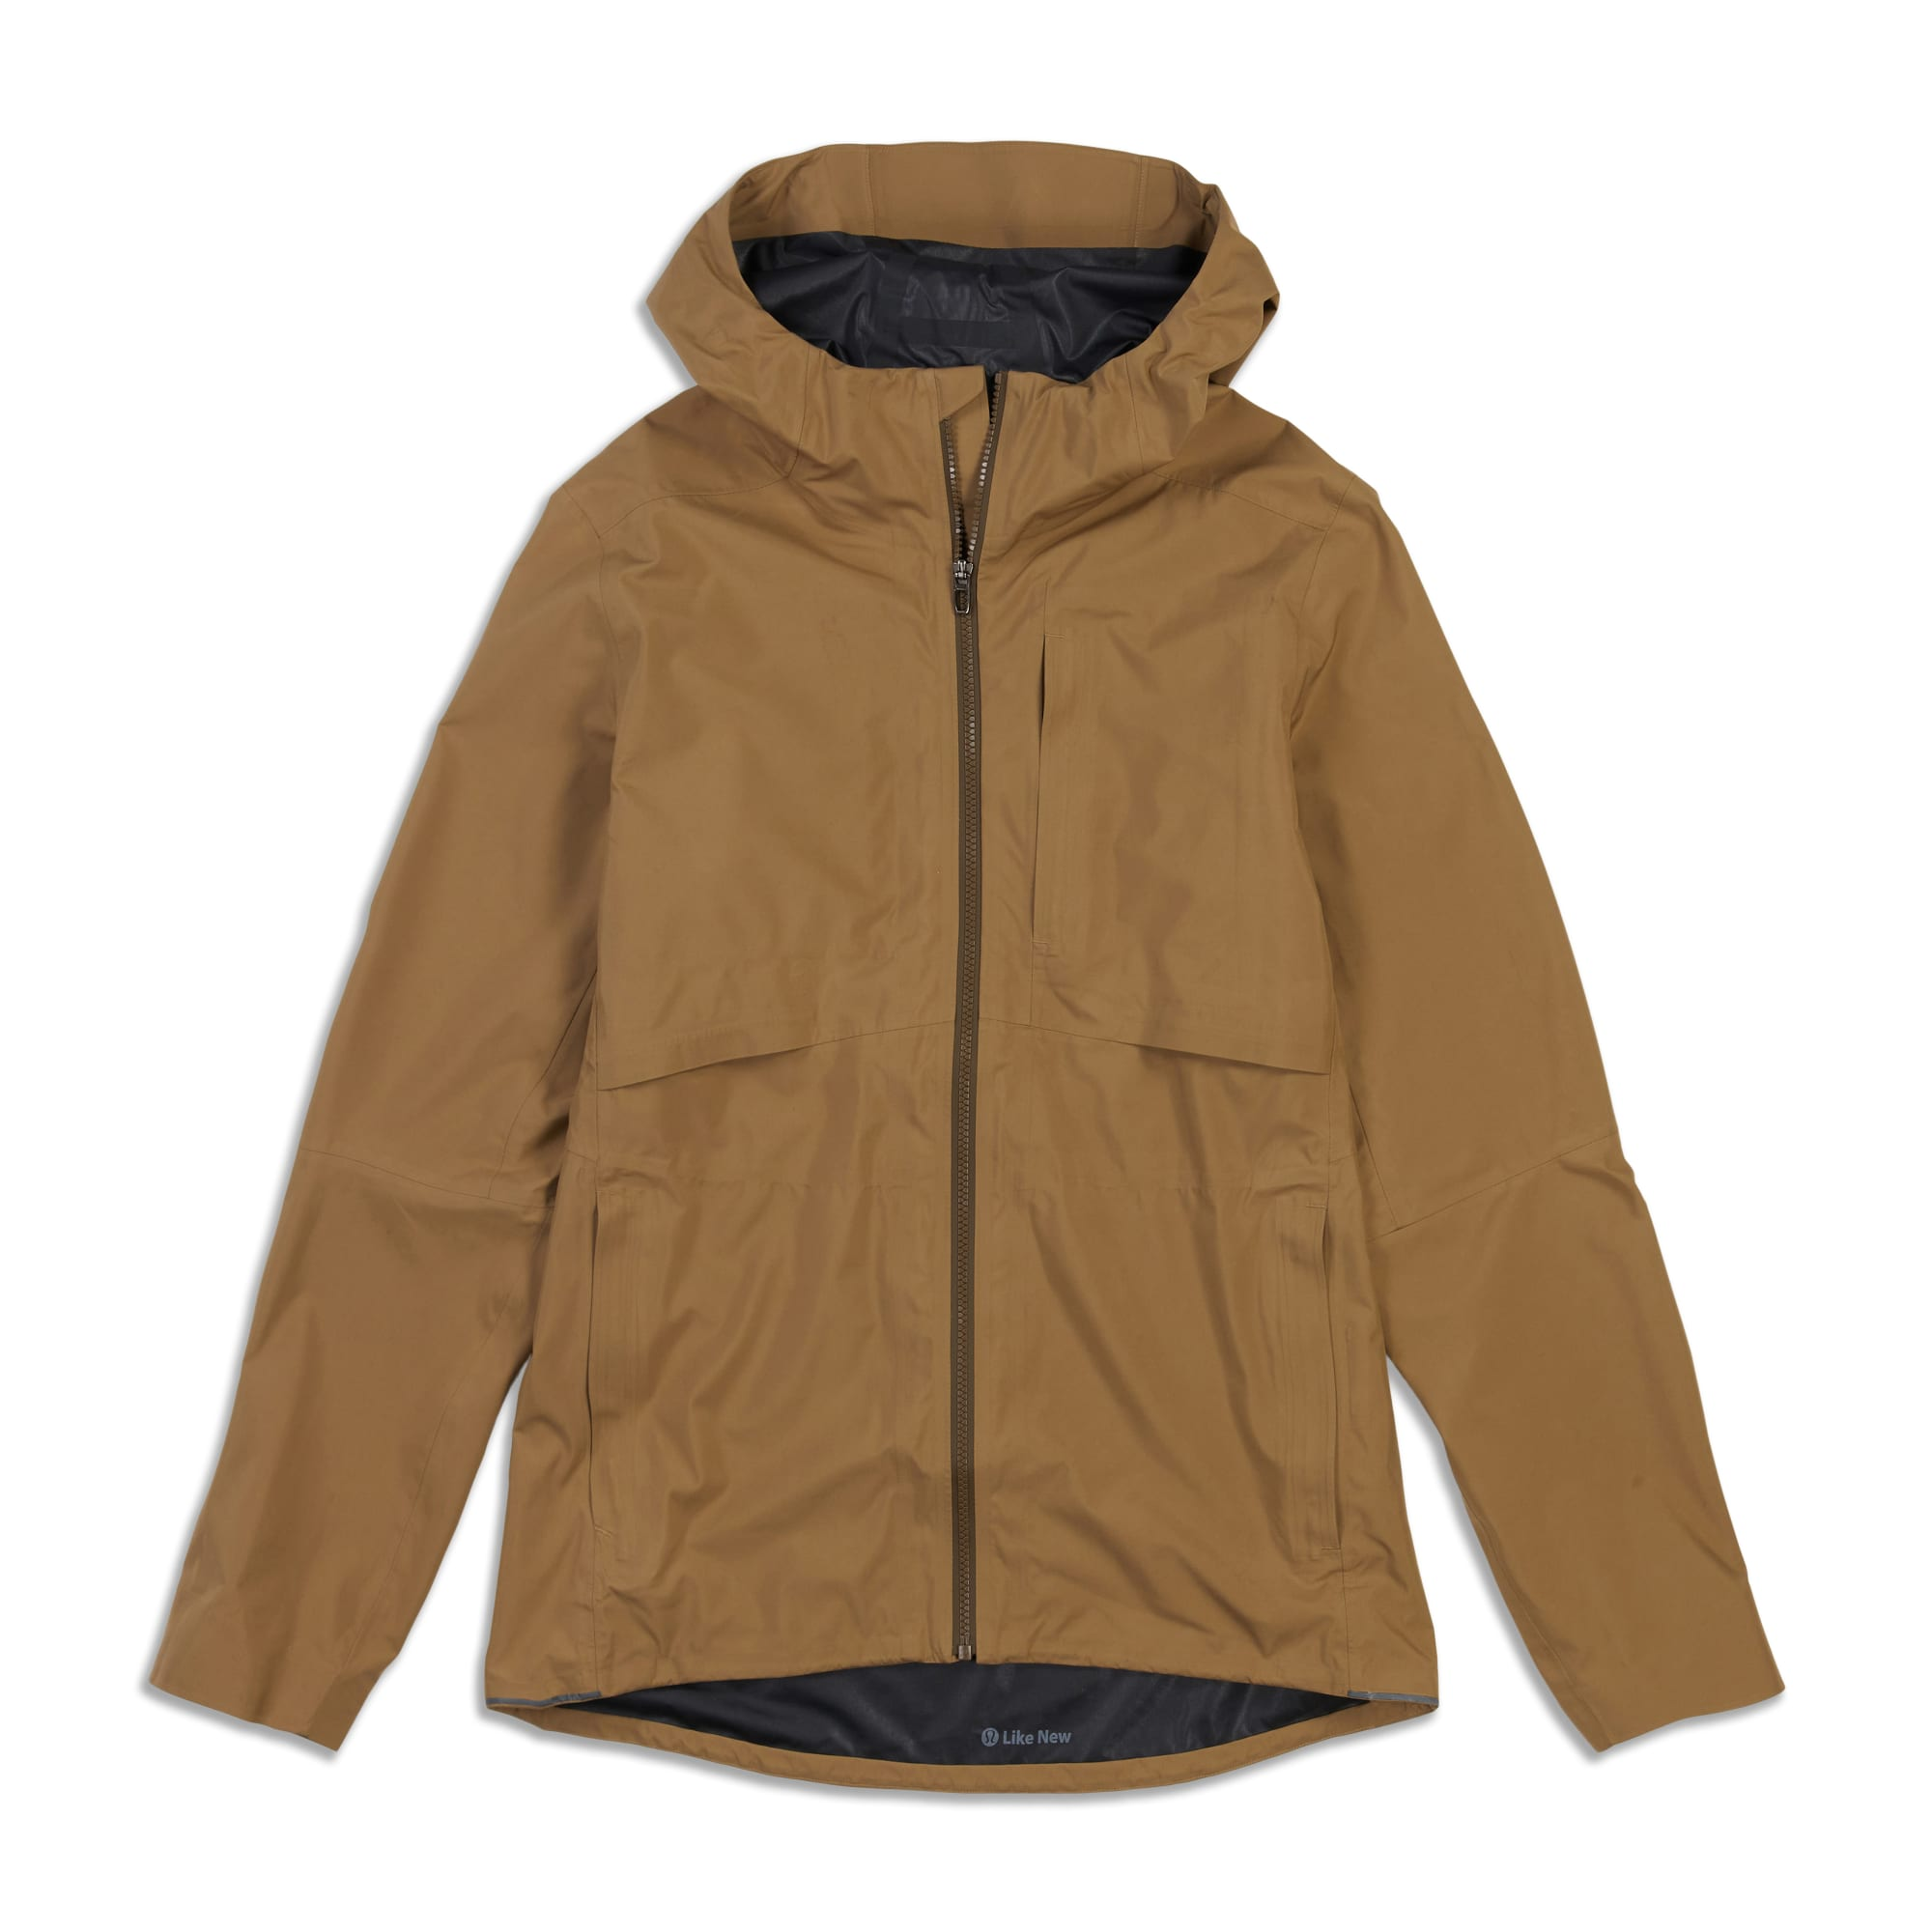 Main product image: Outpour Shell Jacket - Resale